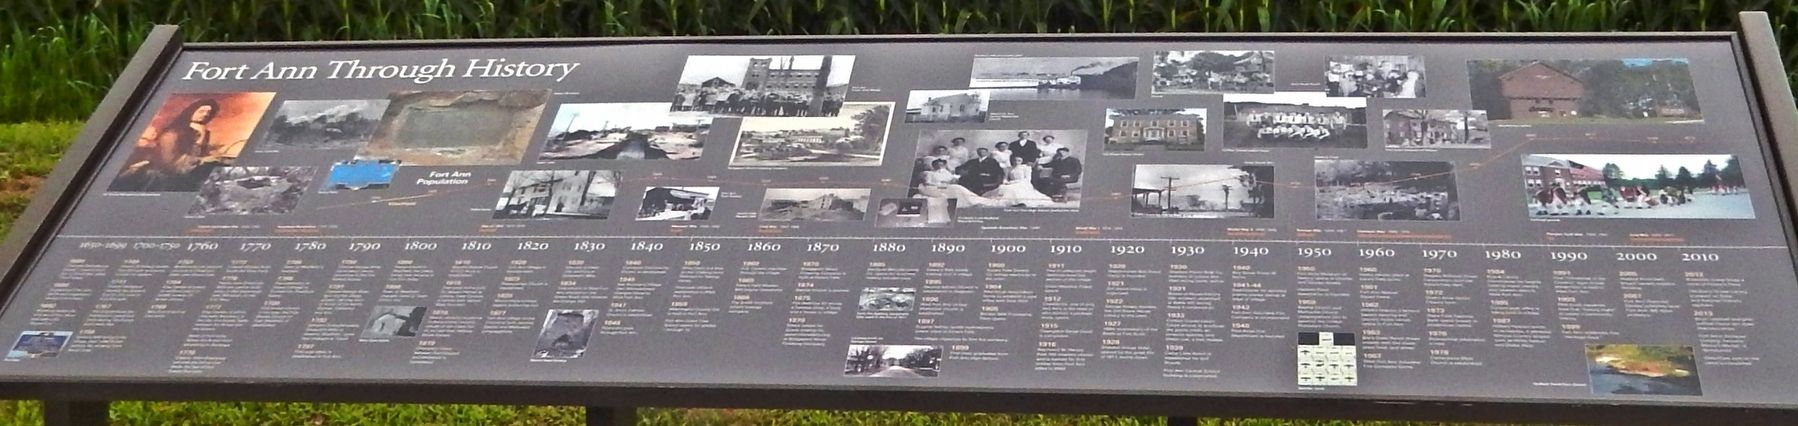 Fort Ann Through History Marker image. Click for full size.